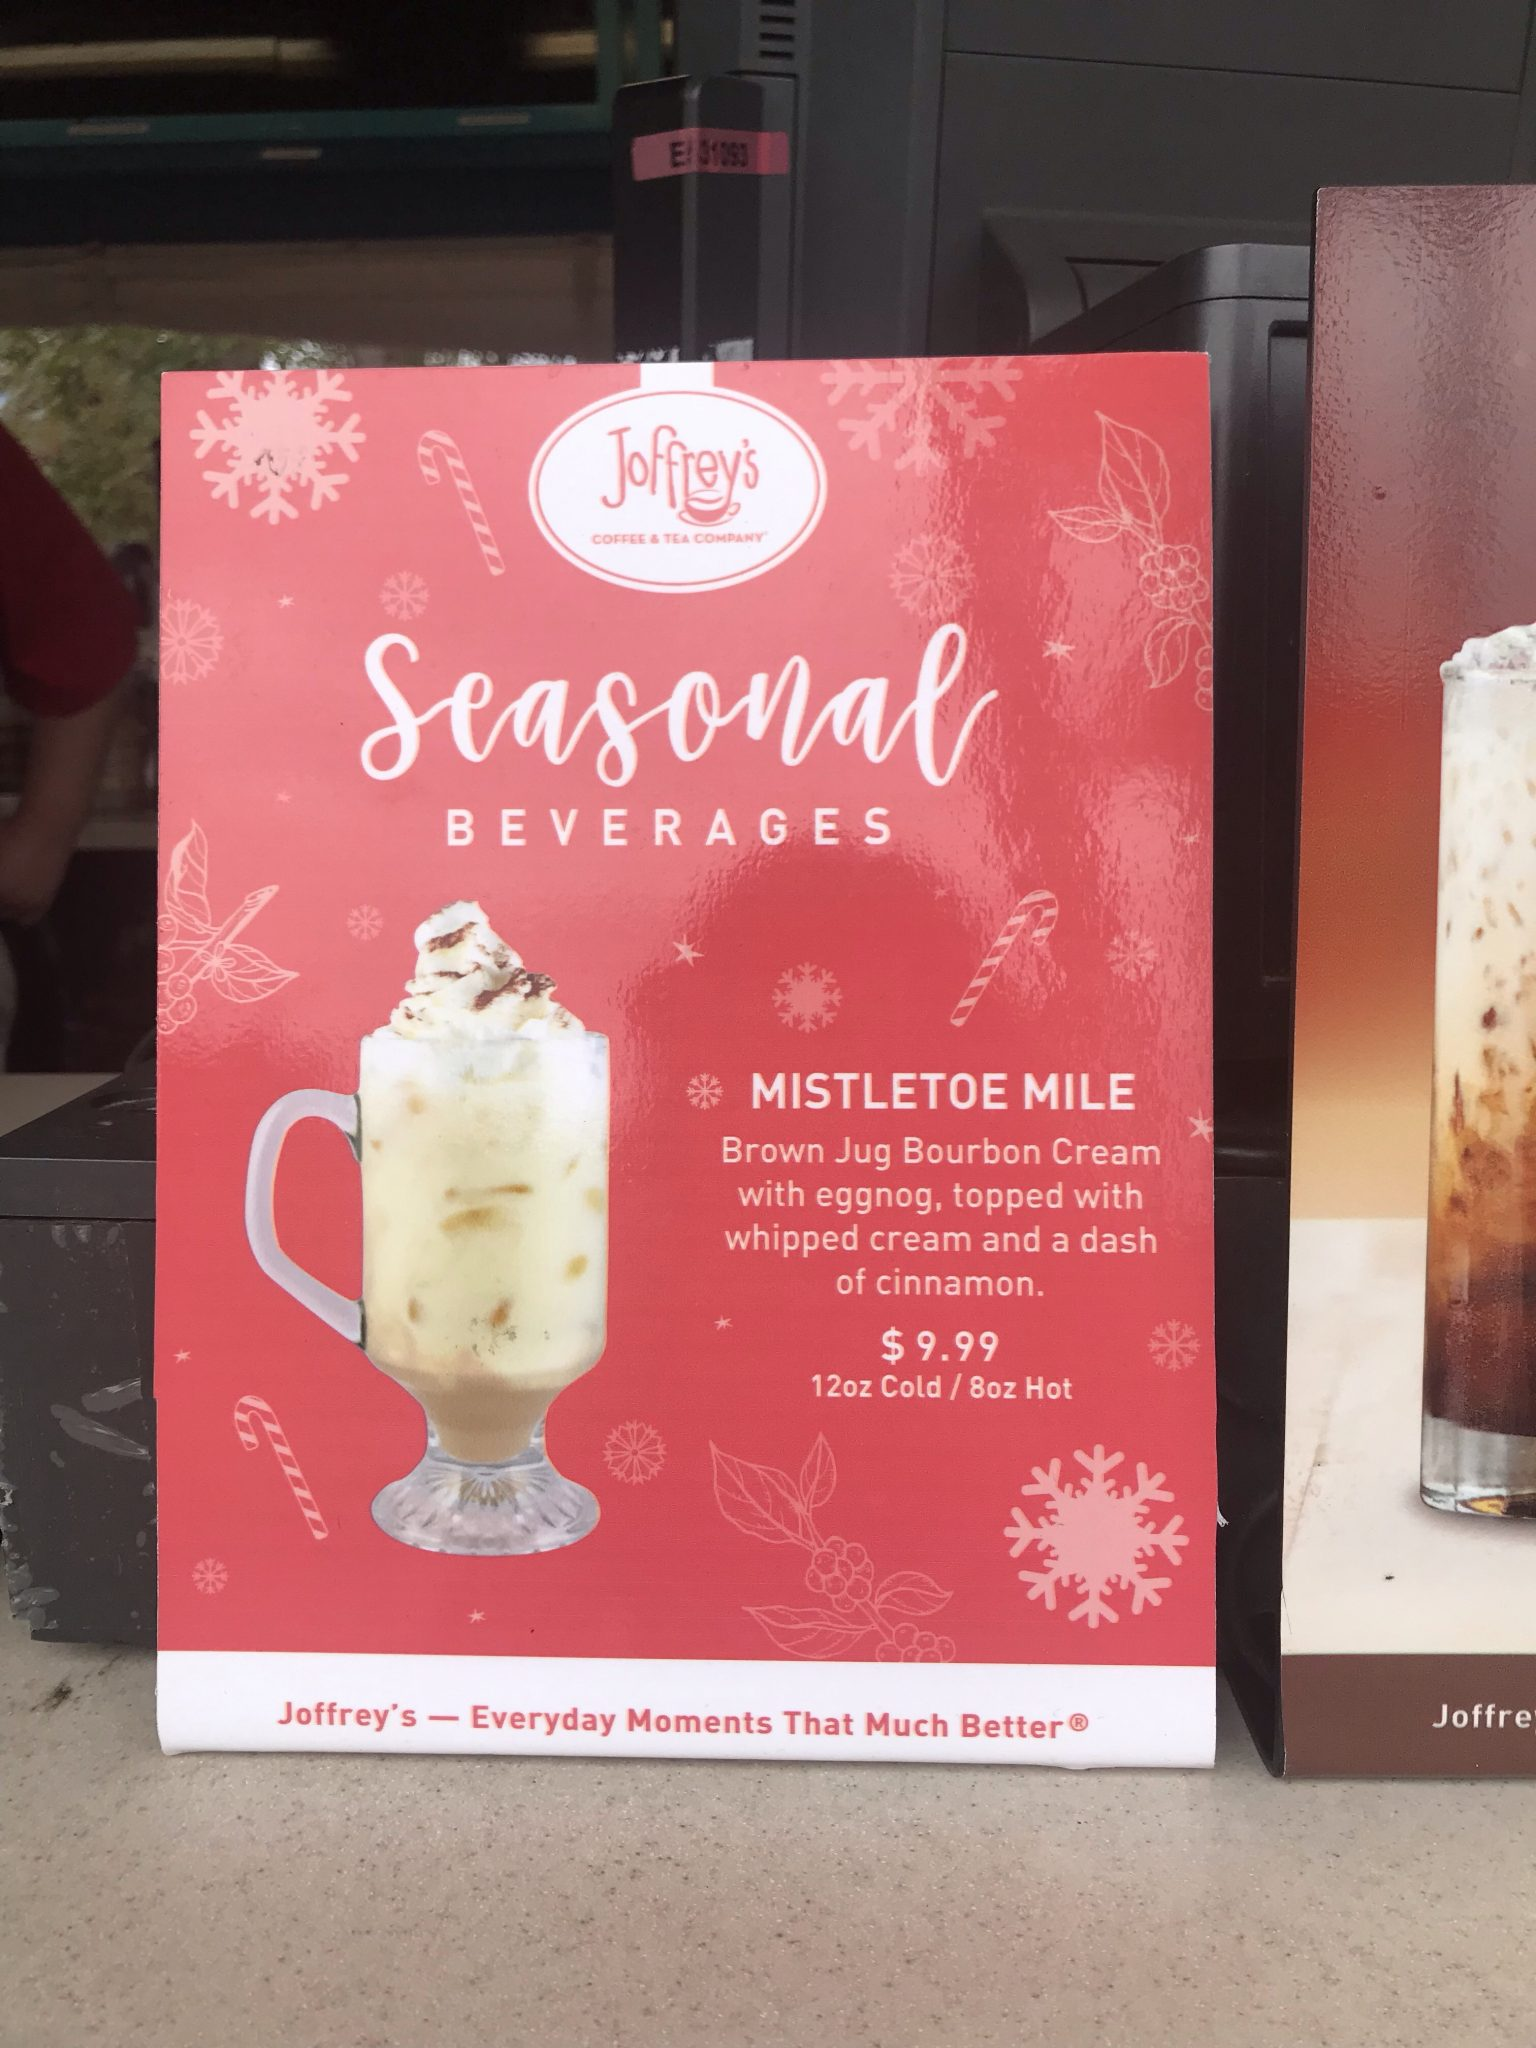 Joffreys Seasonal Beverage Mistletoe Mile Epcot Holiday Festival